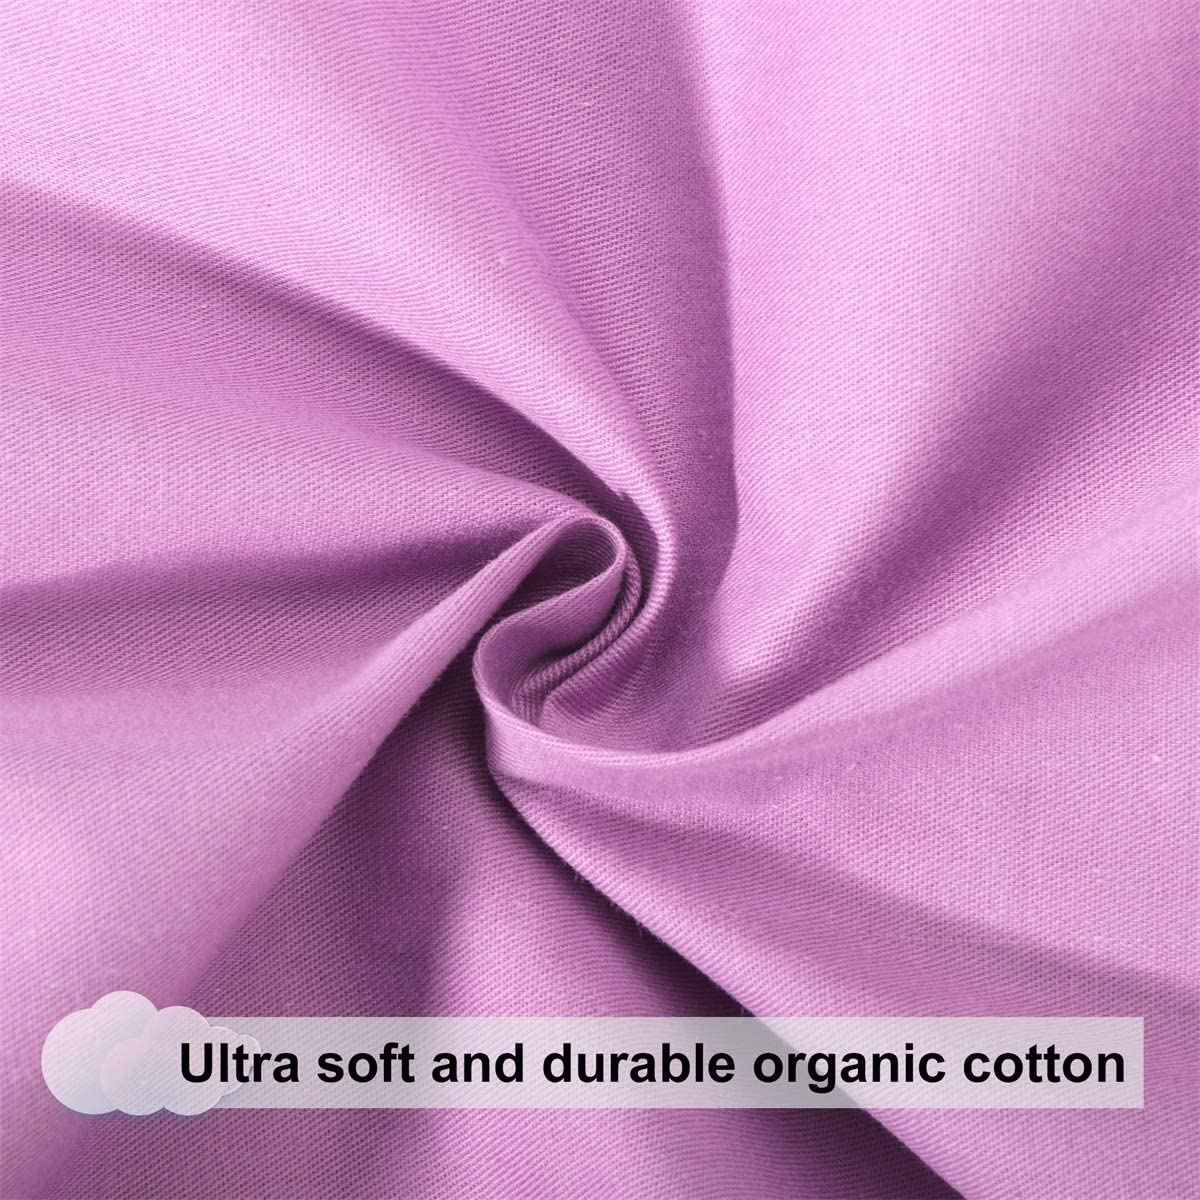 U Shape Pregnancy Body Pillow Cover Pure Cotton Replacement case for Pregnancy Pillow Purple Sunfayzz Maternity Pillow Cover 59 Inch Bed Pillow